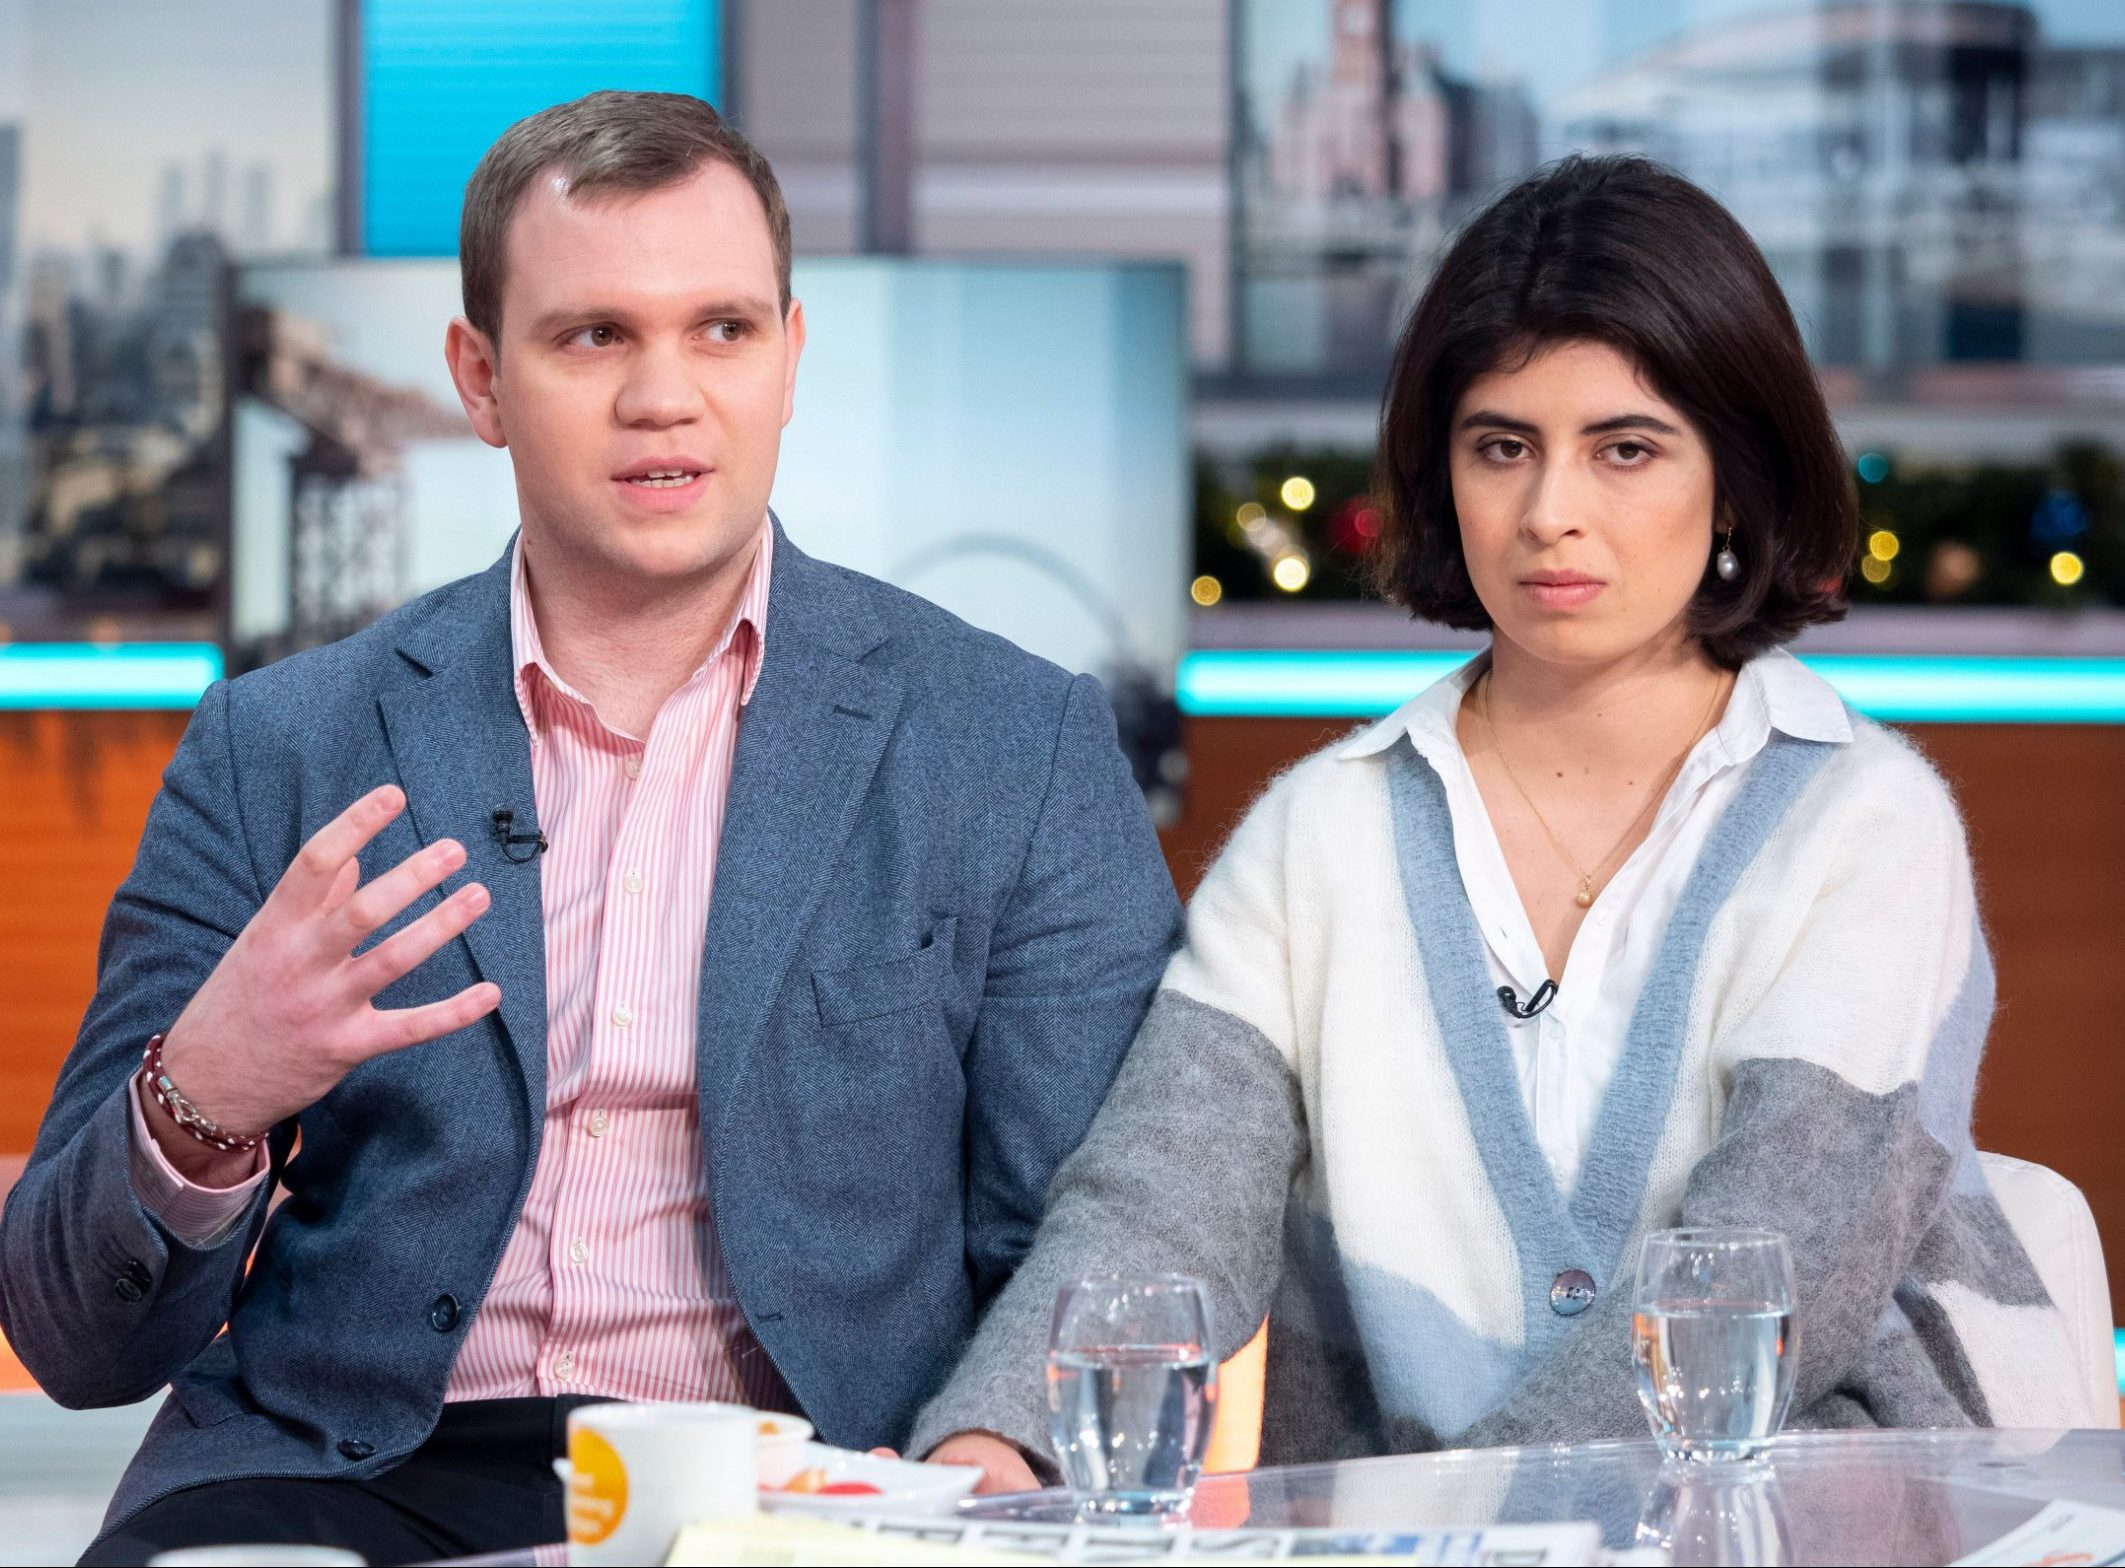 Editorial use only Mandatory Credit: Photo by Ken McKay/ITV/REX (10036118ag) Matthew Hedges and Daniela Tejada 'Good Morning Britain' TV show, London, UK - 18 Dec 2018 MATTHEW HEDGES AND DANIELA TEJADA - DIVYA In his first UK TV interview, Matthew Hedges, the PhD student convicted of spying in the UAE says he's determined to clear his name. The 31 year old who was locked up for five months before he had access to a lawyer, says he was forced to stand for whole days in ankle cuffs and was interrogated for up to 15 hours at a time during his ordeal. He was released after a campaign by his wife, Daniela Tejada, and an intervention from Jeremy Hunt. * Hedges story VT * Matthew Hedges and Daniela Tejada desk